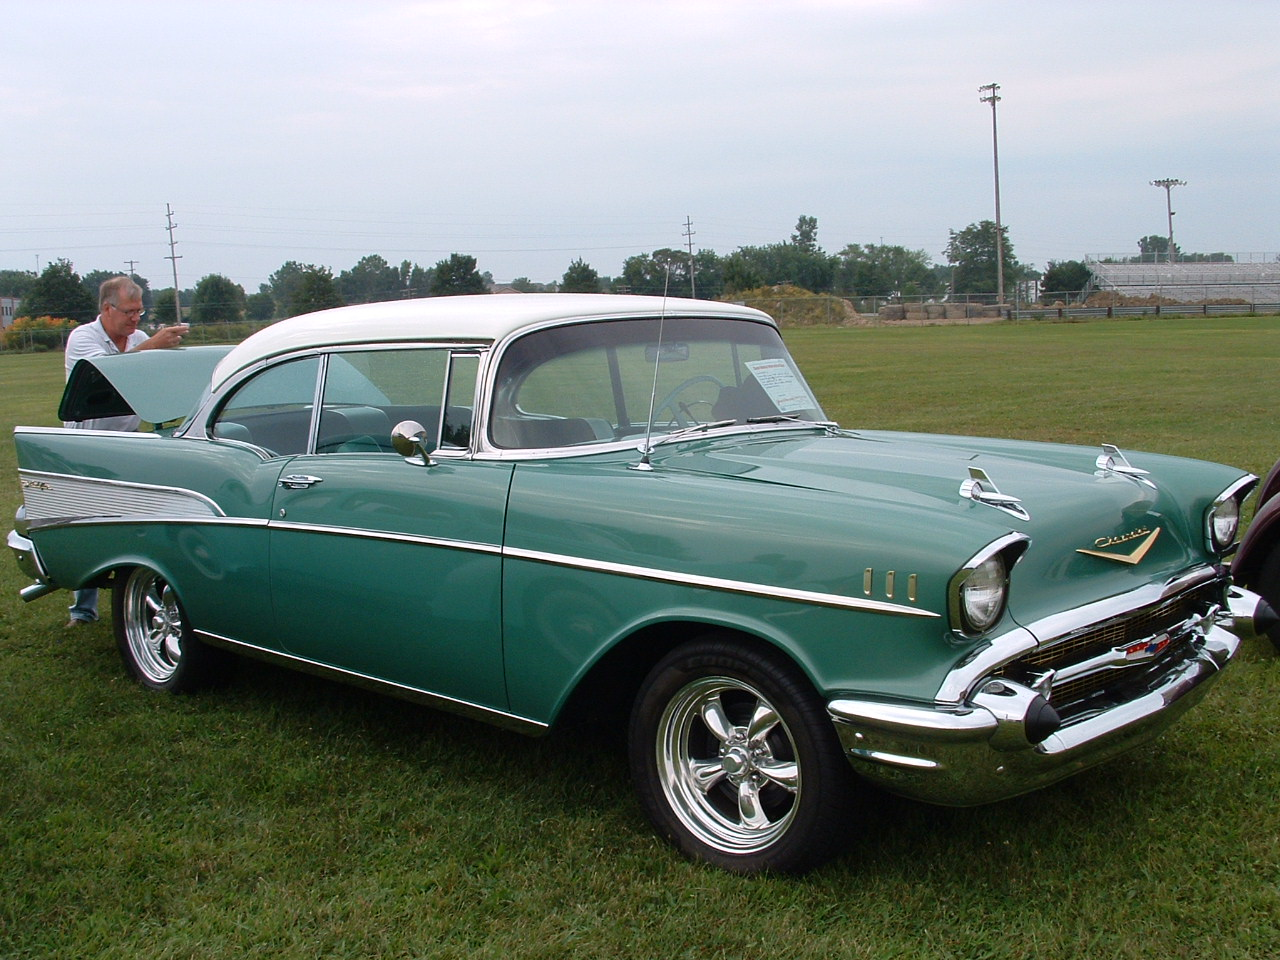 1957 Chevy BelAir coupe,